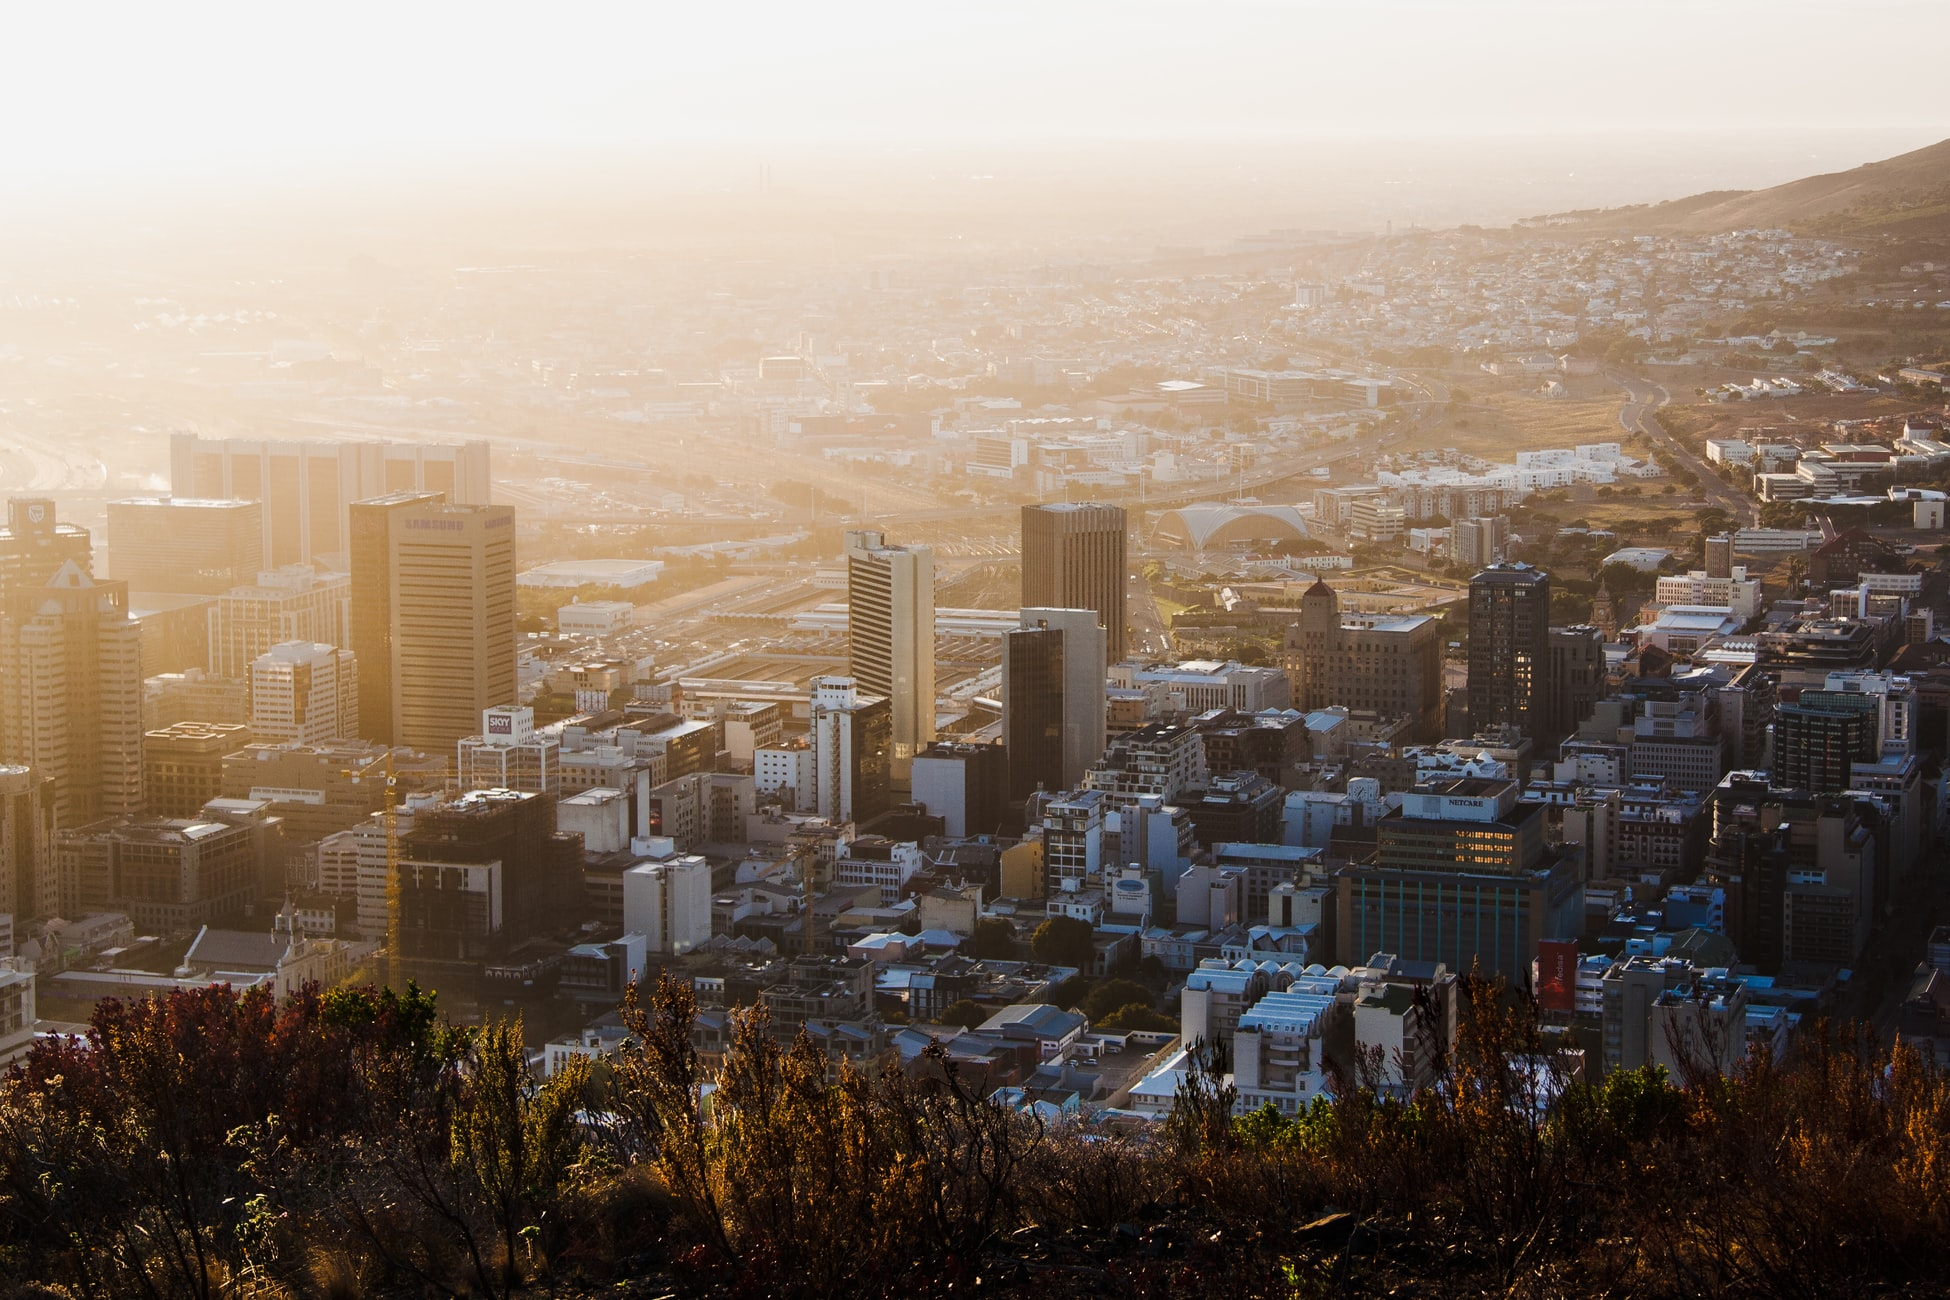 Skyline of Cape Town, South Africa